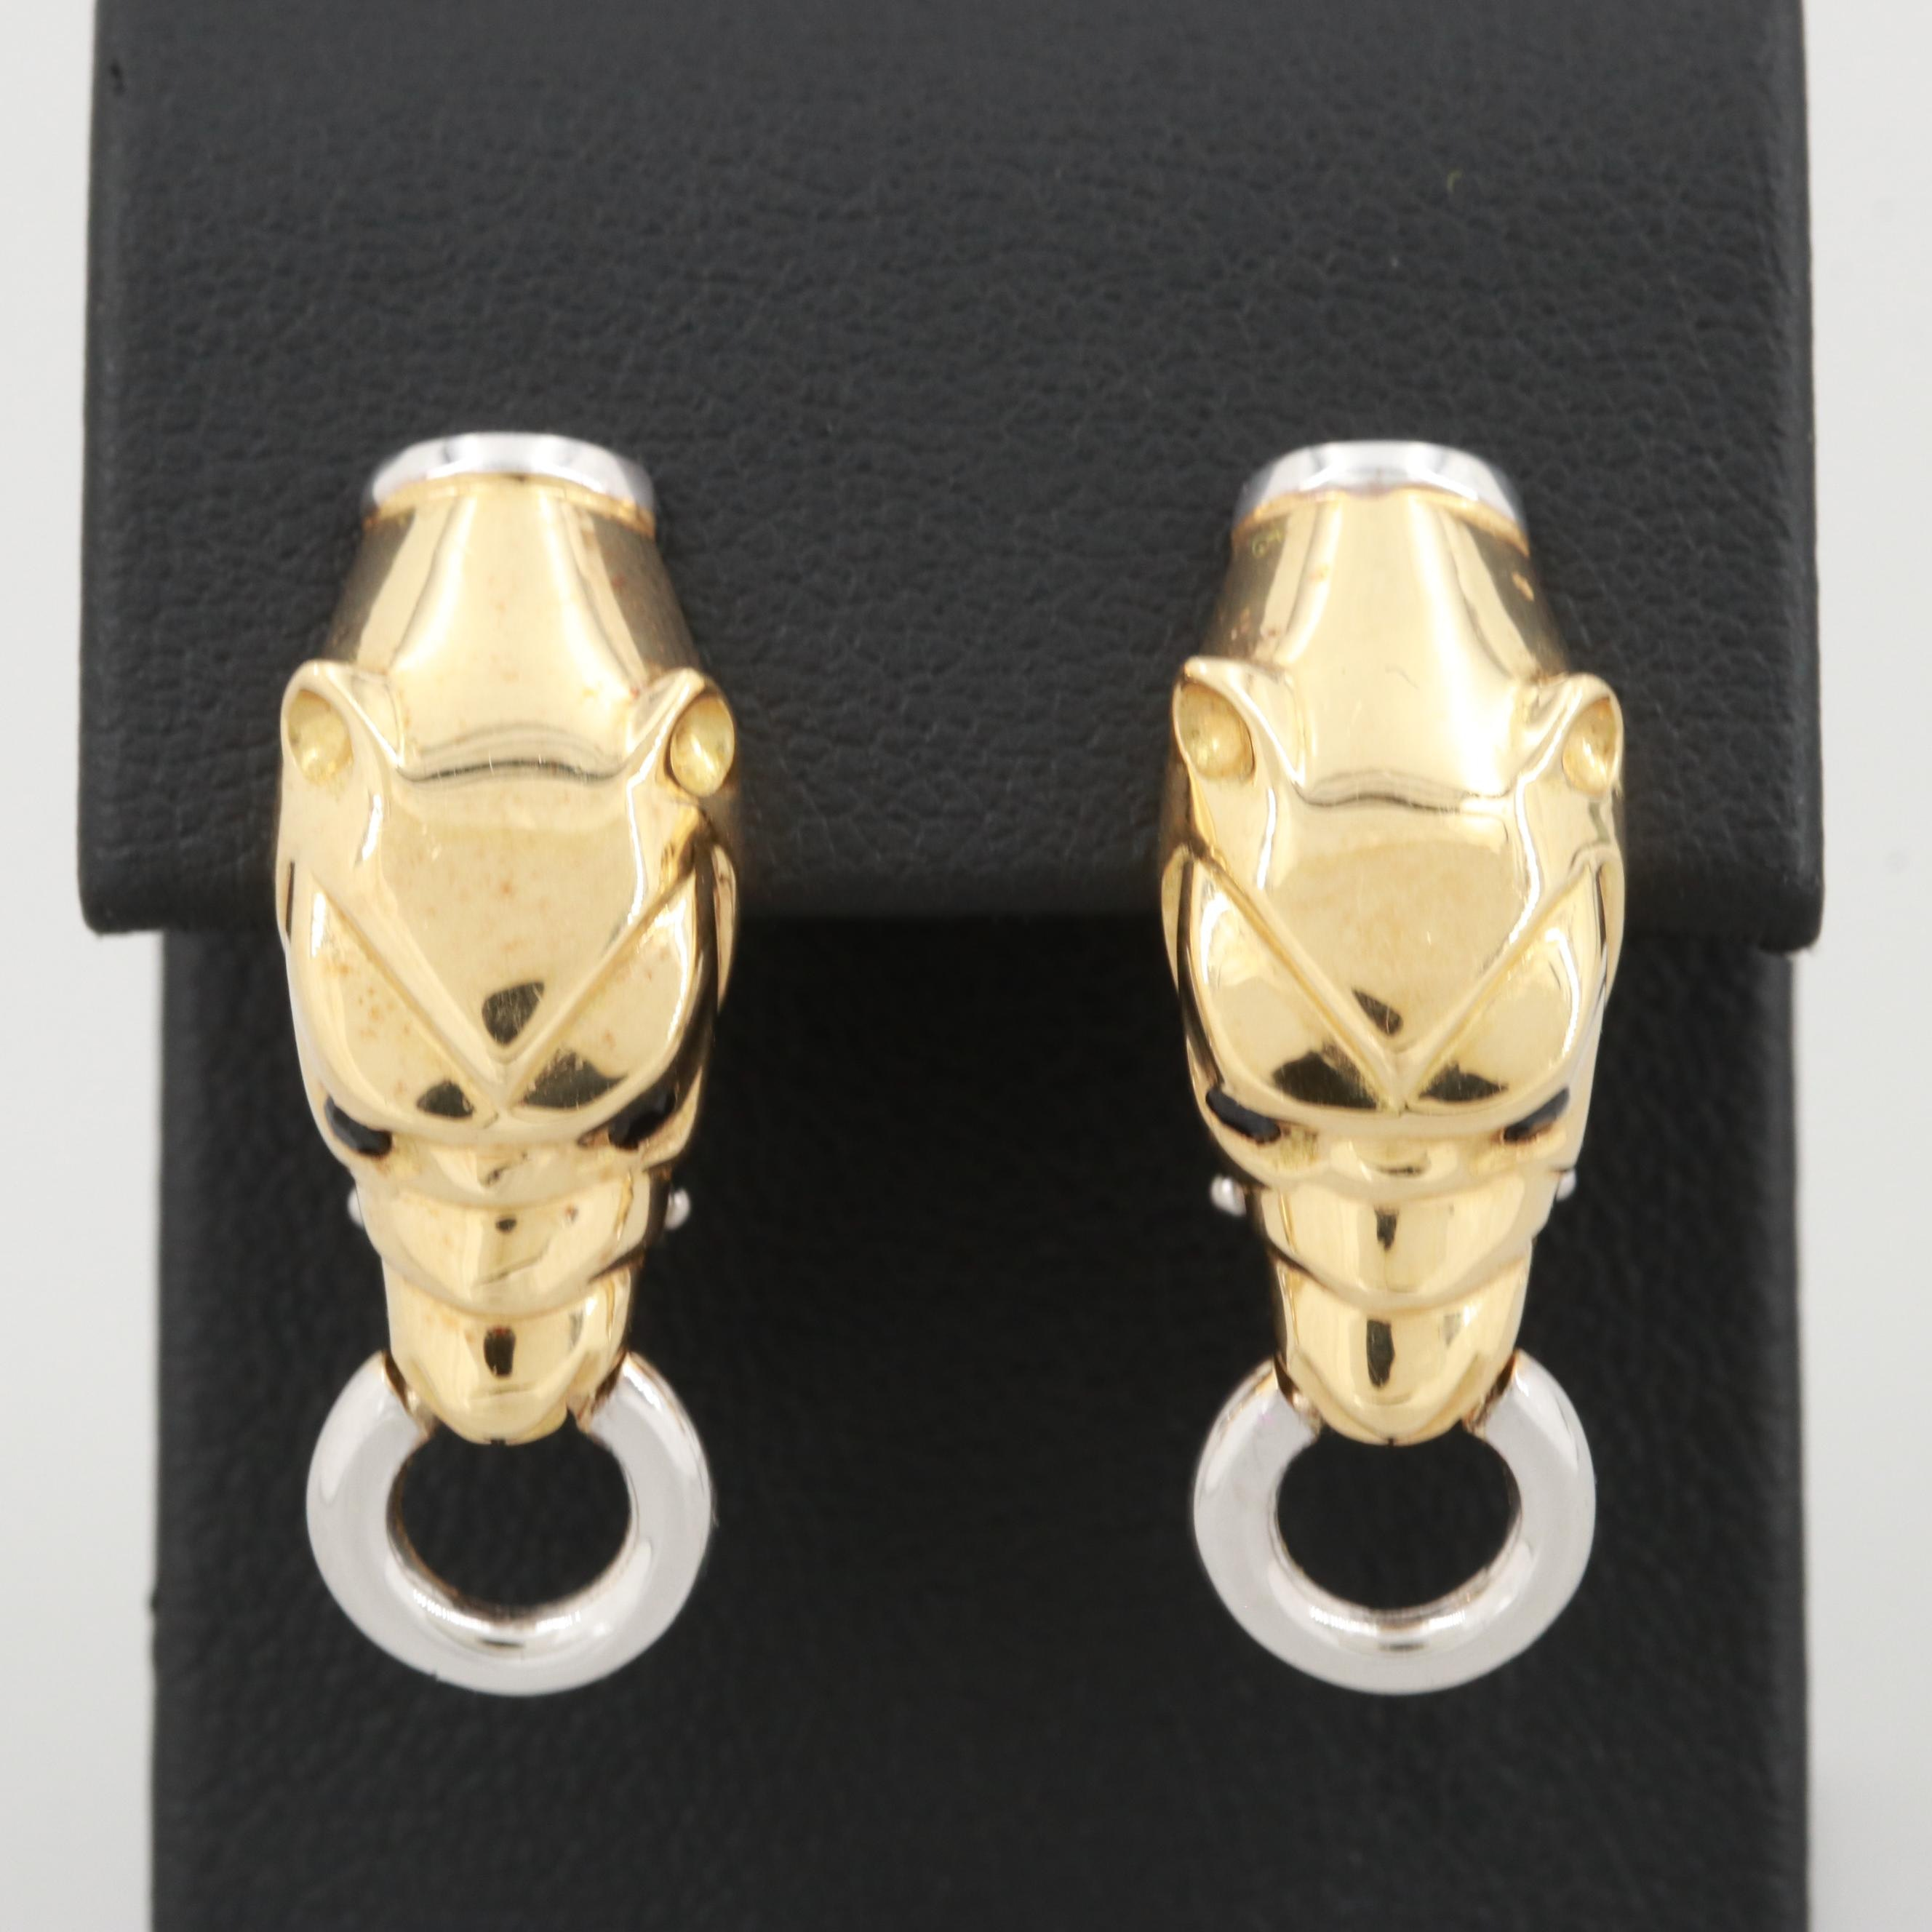 18K Yellow Gold Blue Sapphire Dog Head Earrings with 18K White Gold Accents